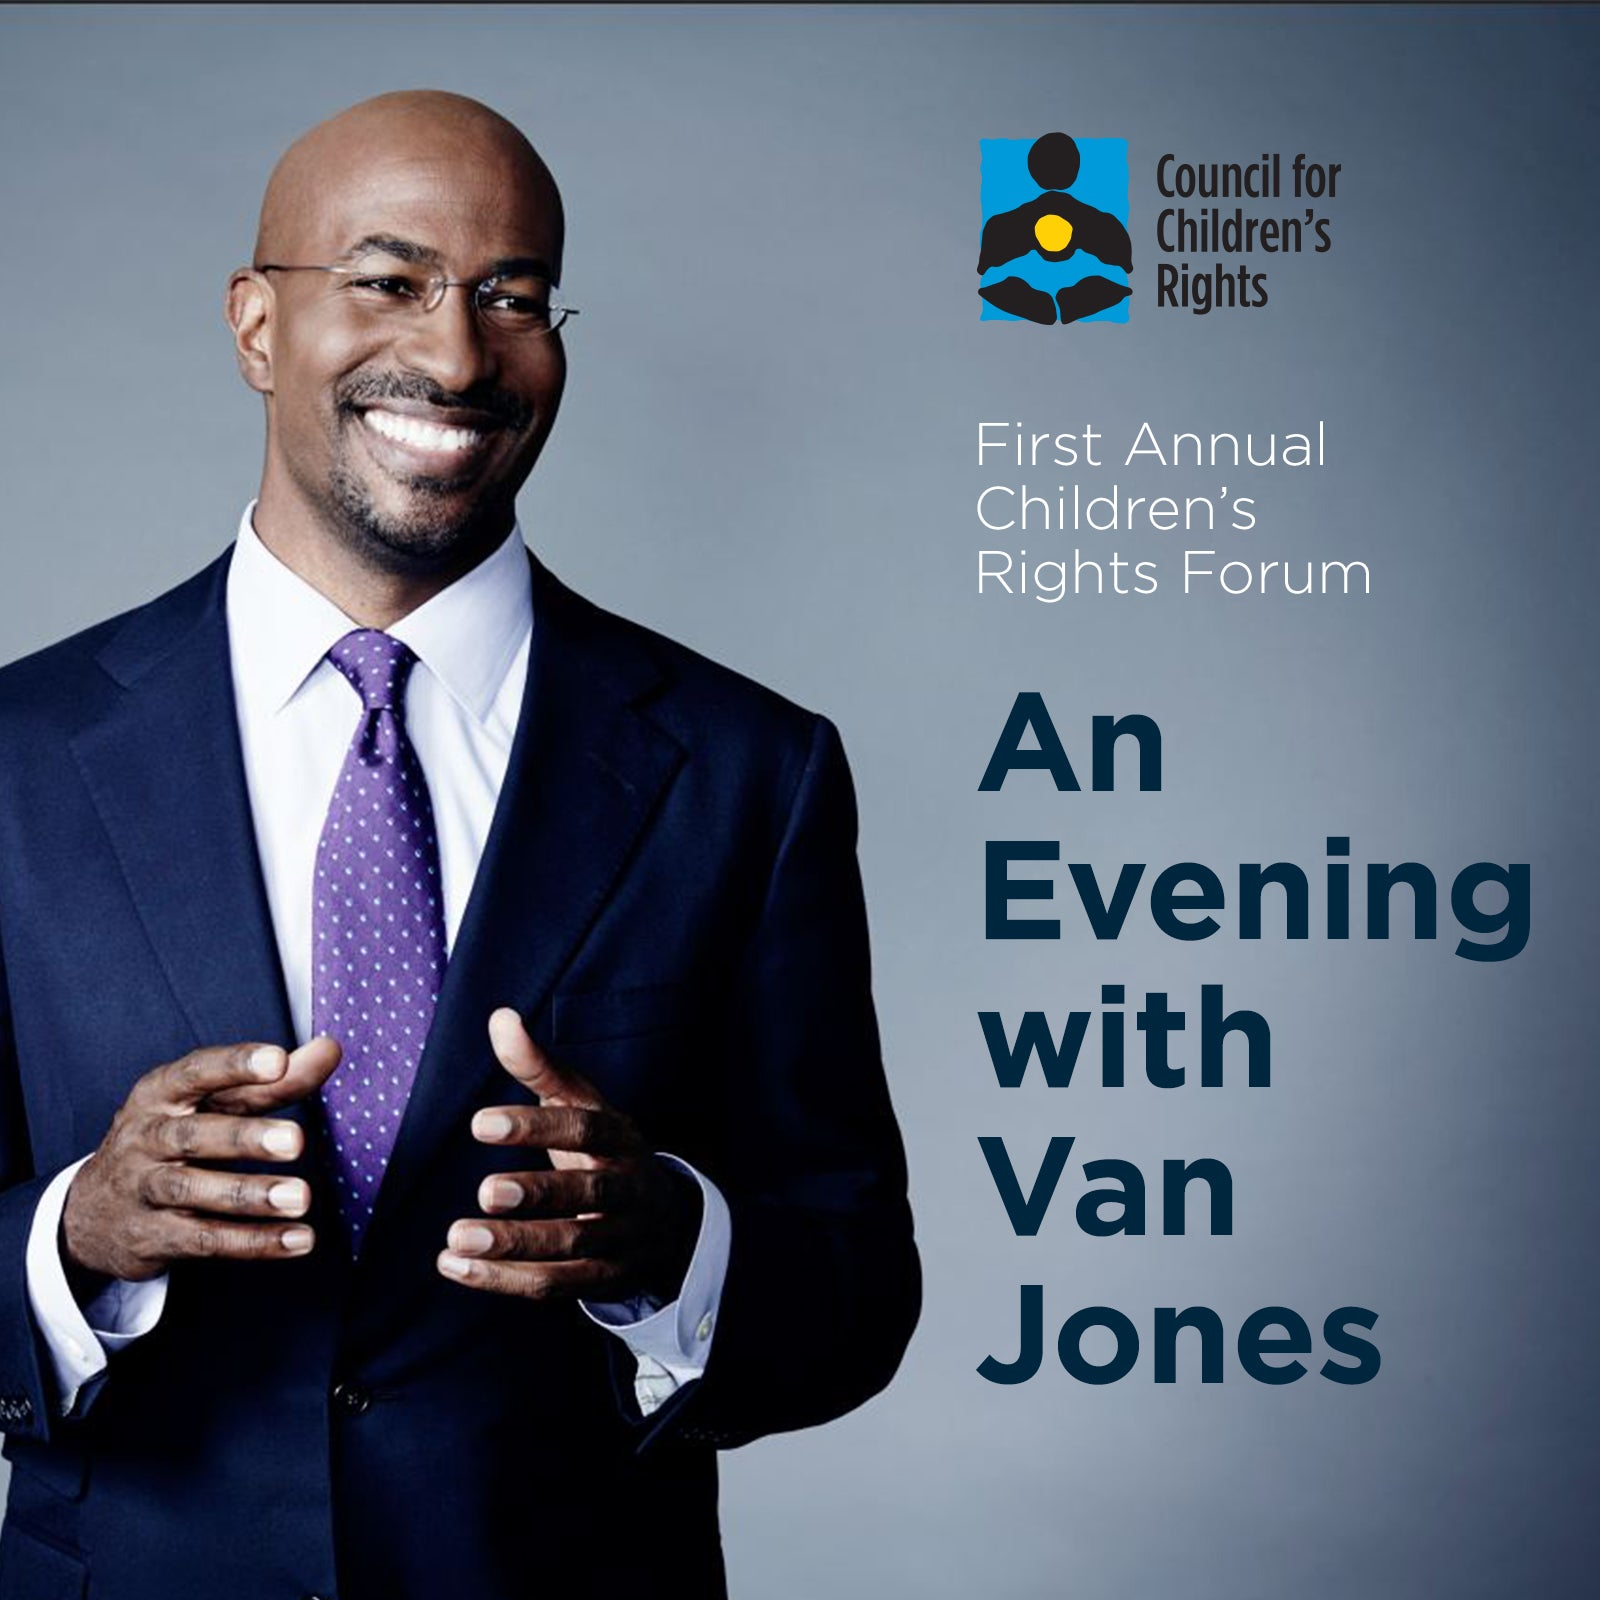 Children's Rights Forum: An Evening with Van Jones